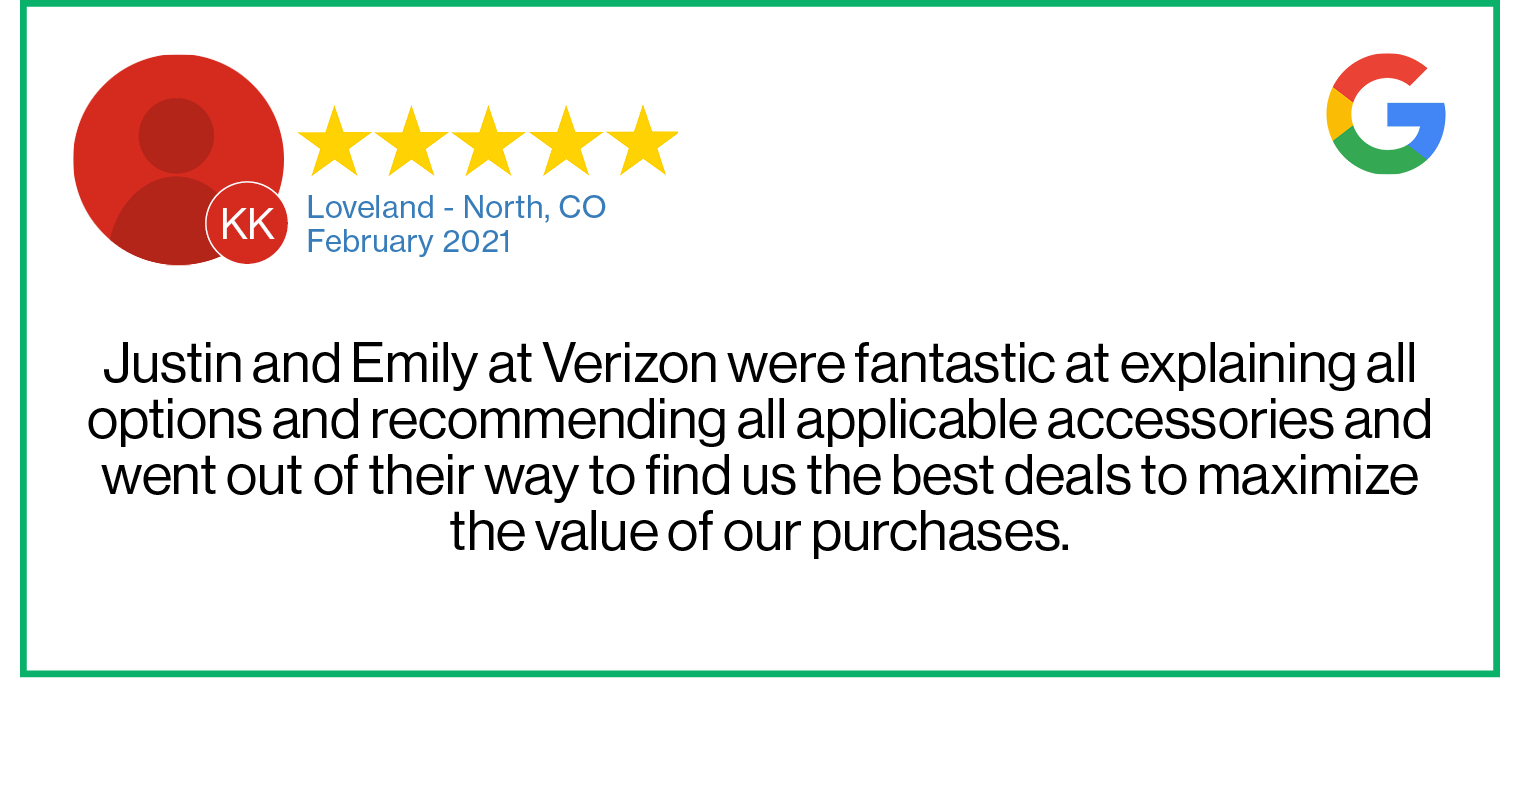 Check out this recent customer review about the Verizon Cellular Plus store in Loveland, Colorado.